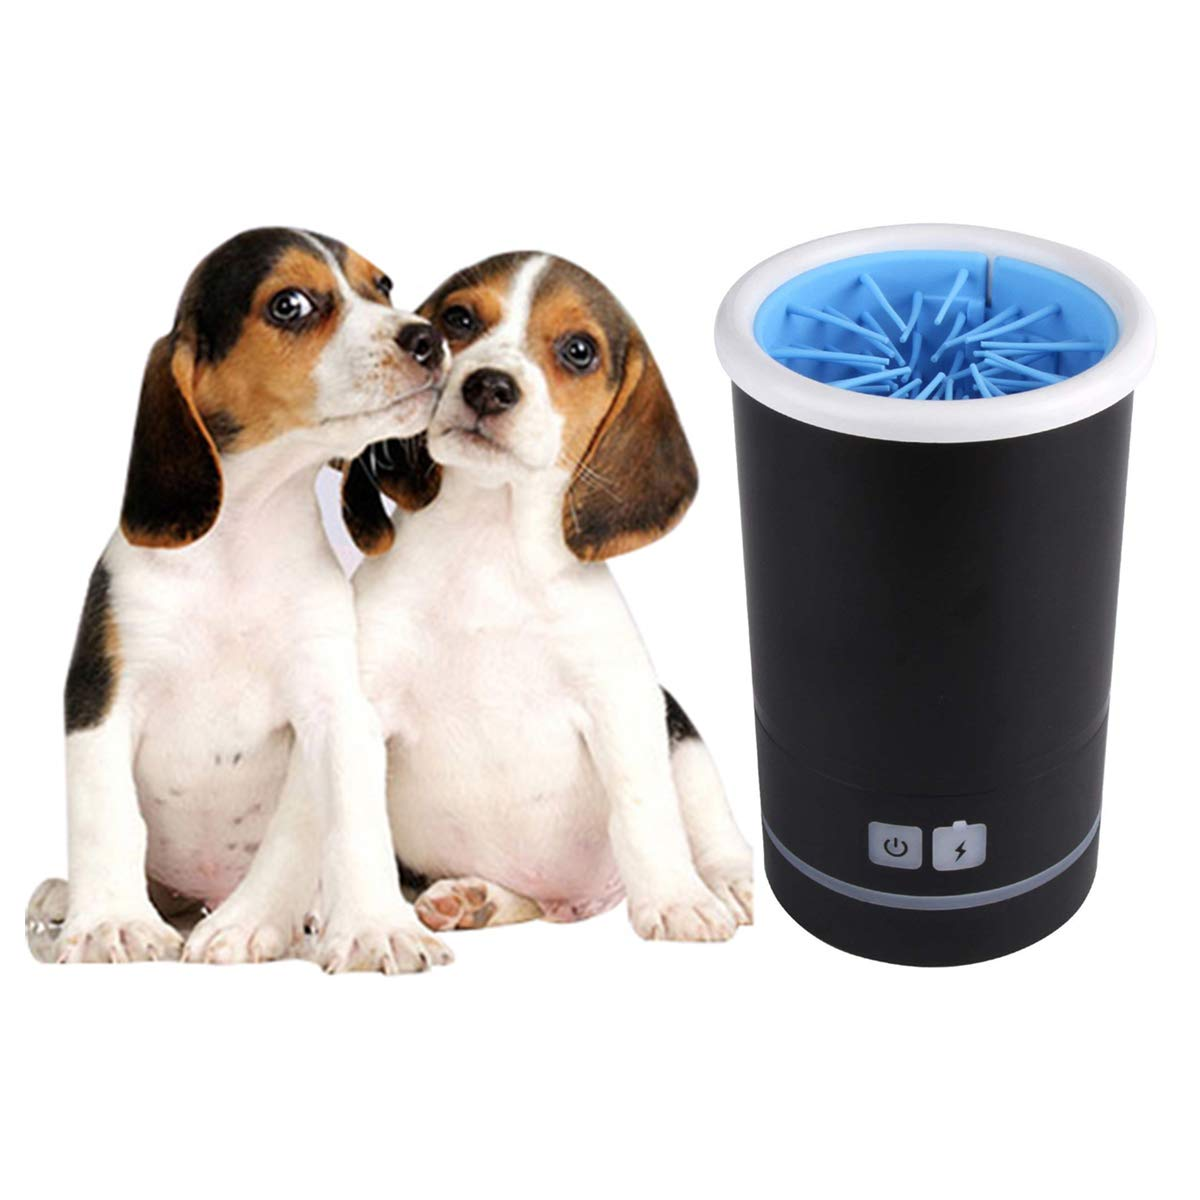 PENCK Pet Automatic Paws Cleaner Paw Washer Cup Dog Foot Wash Tools Silicone Bristles Pet Clean Brush Cleaning Paws Muddy Feet USB Charging (for Paws are 4.5CM/1.77'' or Less in Diameter)